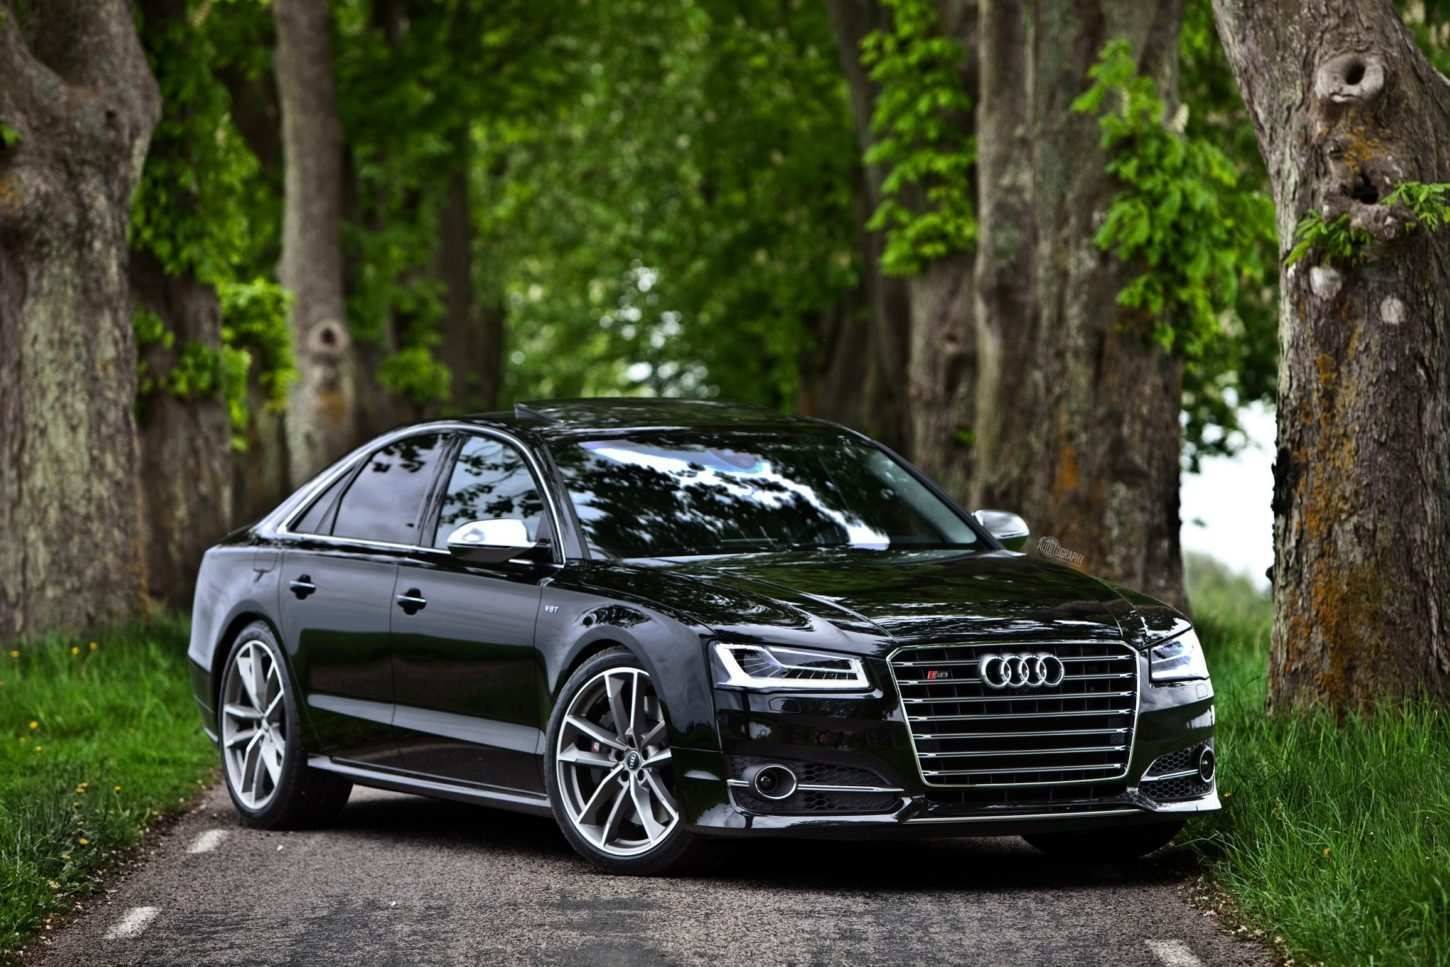 29 New S8 Audi 2019 Engine Redesign with S8 Audi 2019 Engine